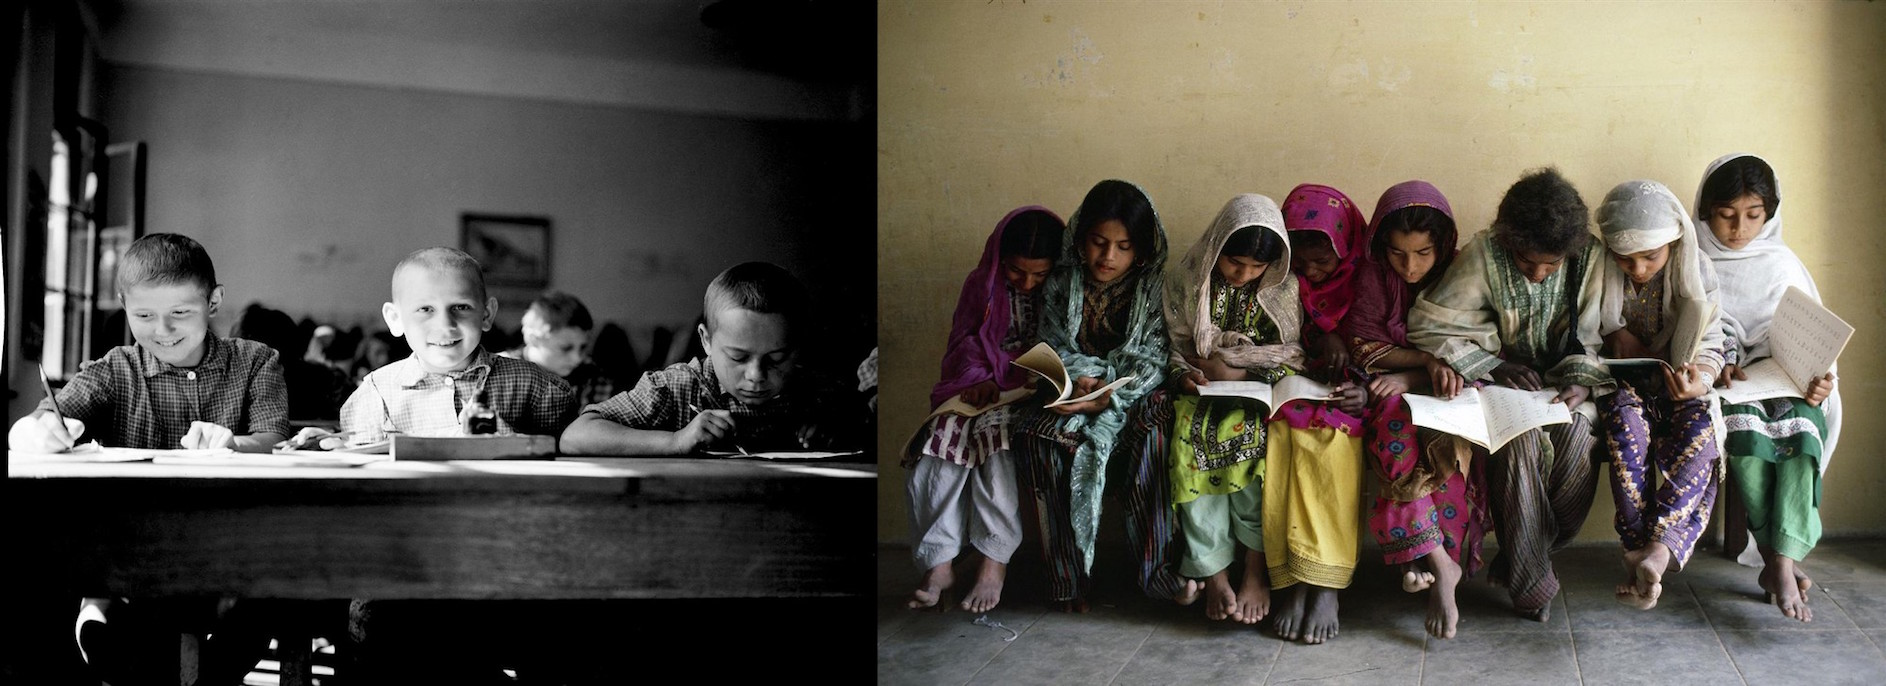 (Left) In 1946 in Yugoslavia, three boys share a desk in a school in the city of Karlovac in the north-western region of Croatia. (Right) In 1983 in Pakistan, girls share books and a bench after class in their school in the city of Karachi.